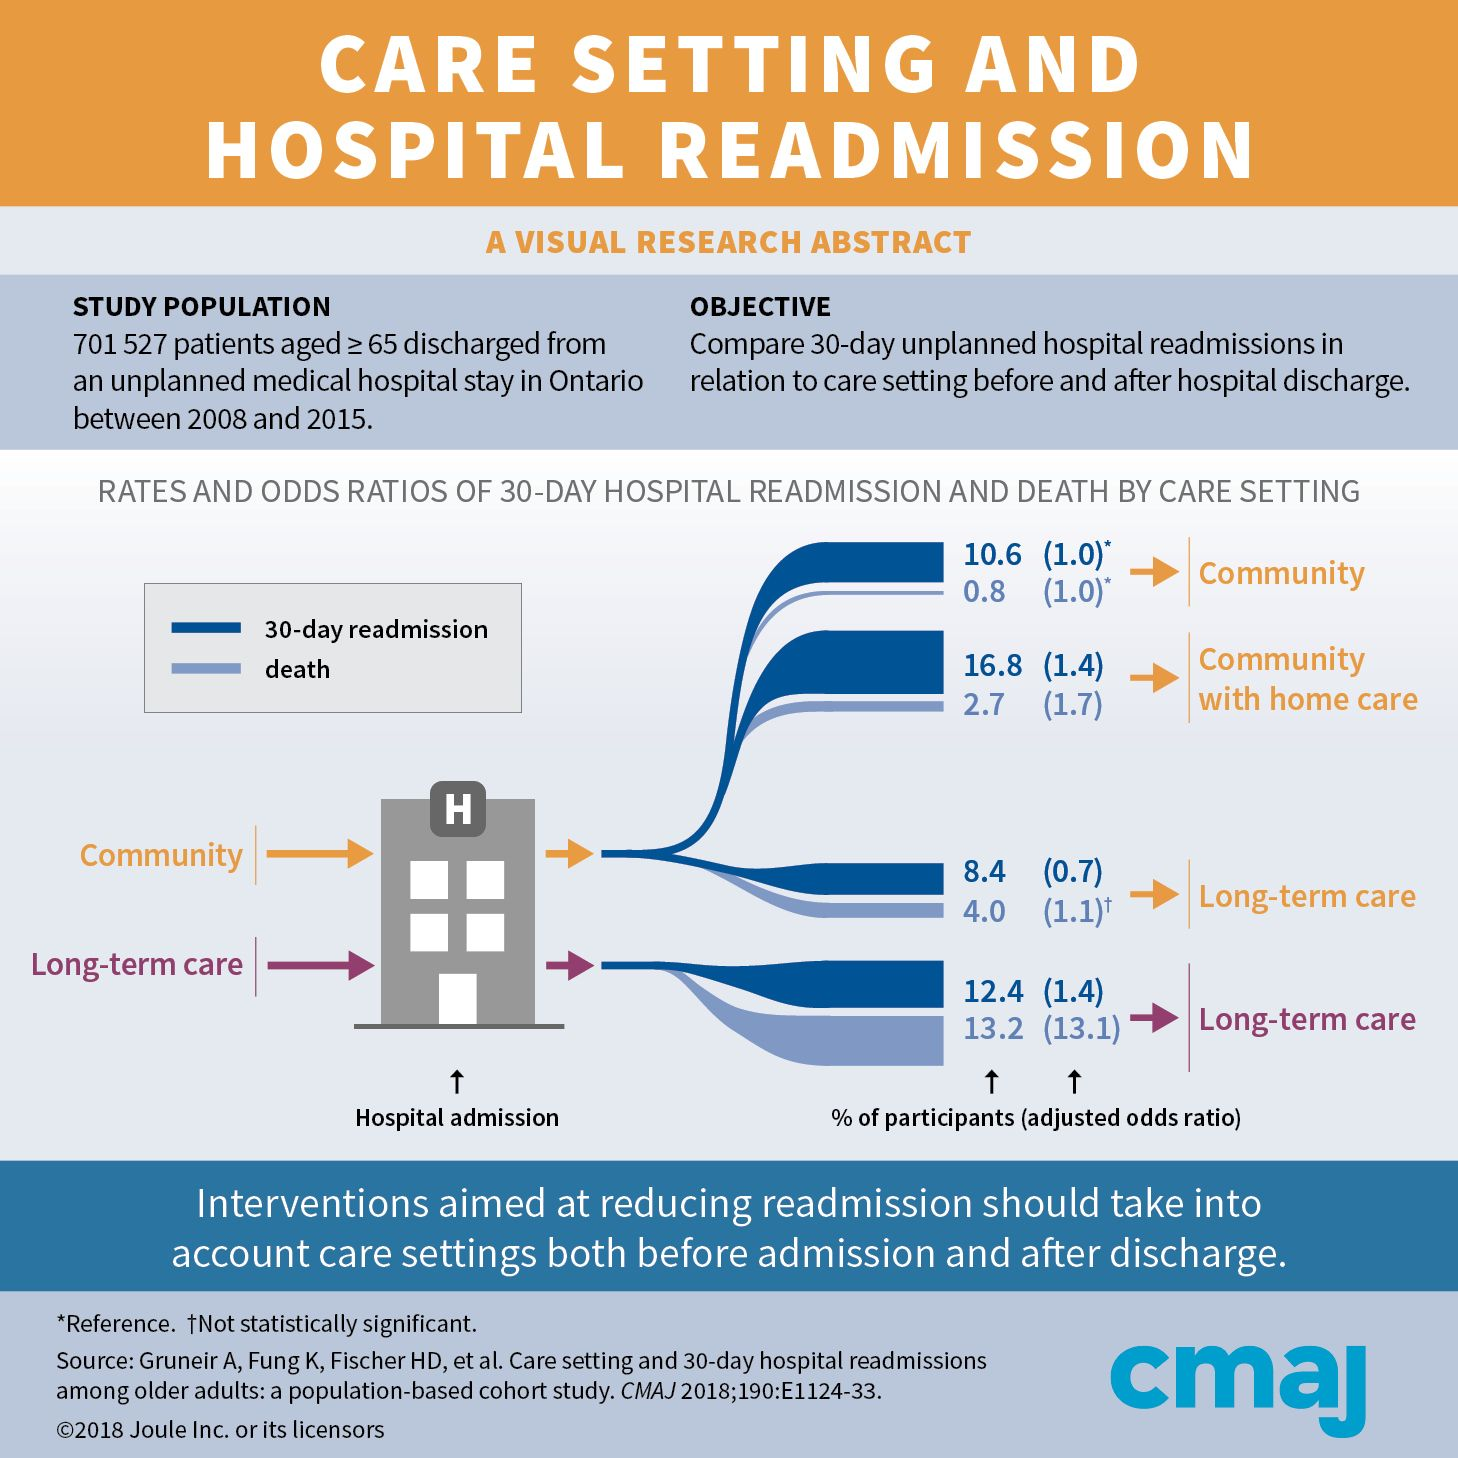 Care setting and 30day hospital readmissions among older